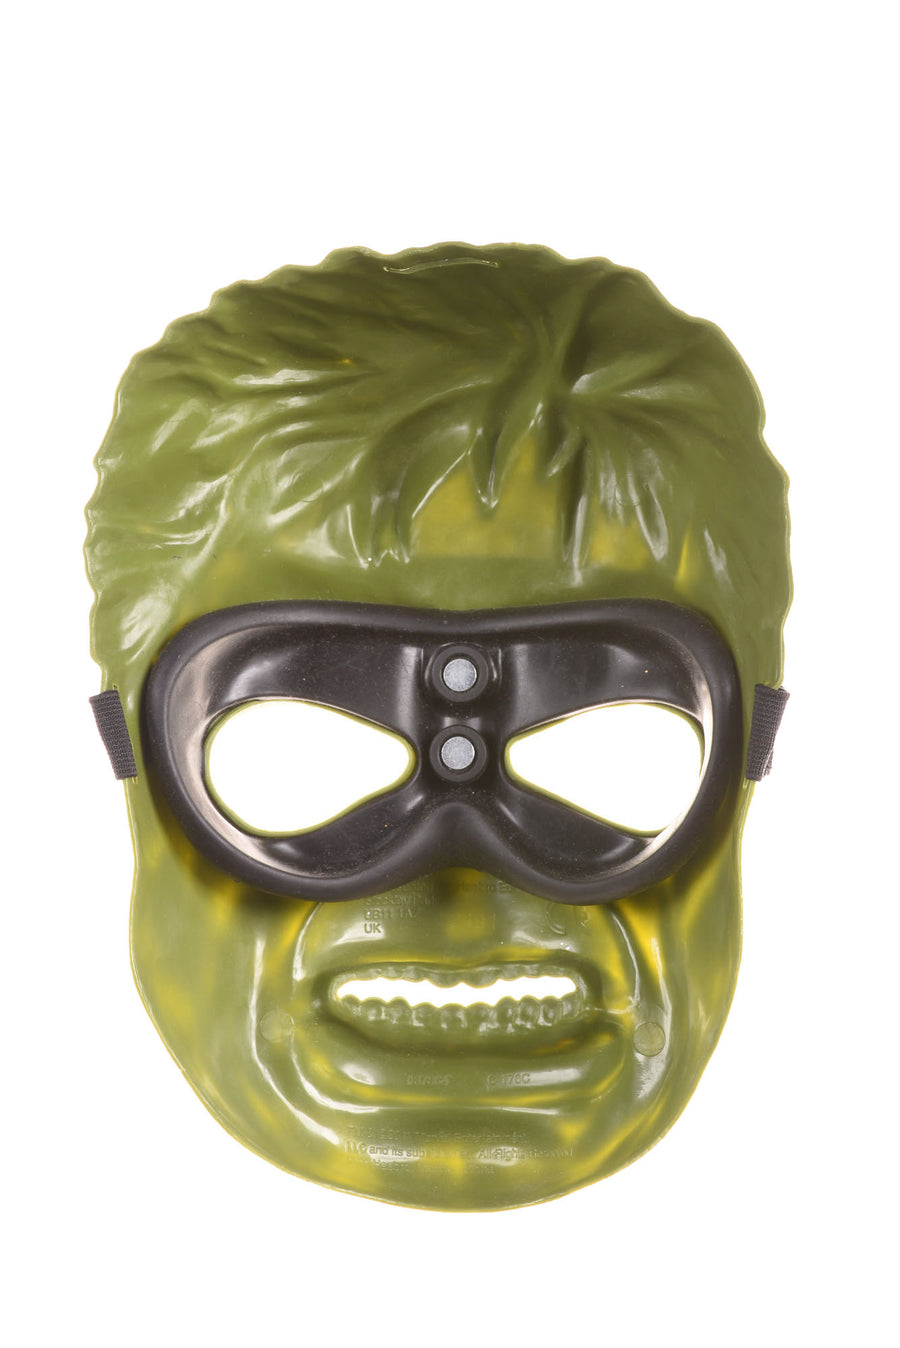 USED Hasbro Boy's Hulk Halloween Mask N/A Green